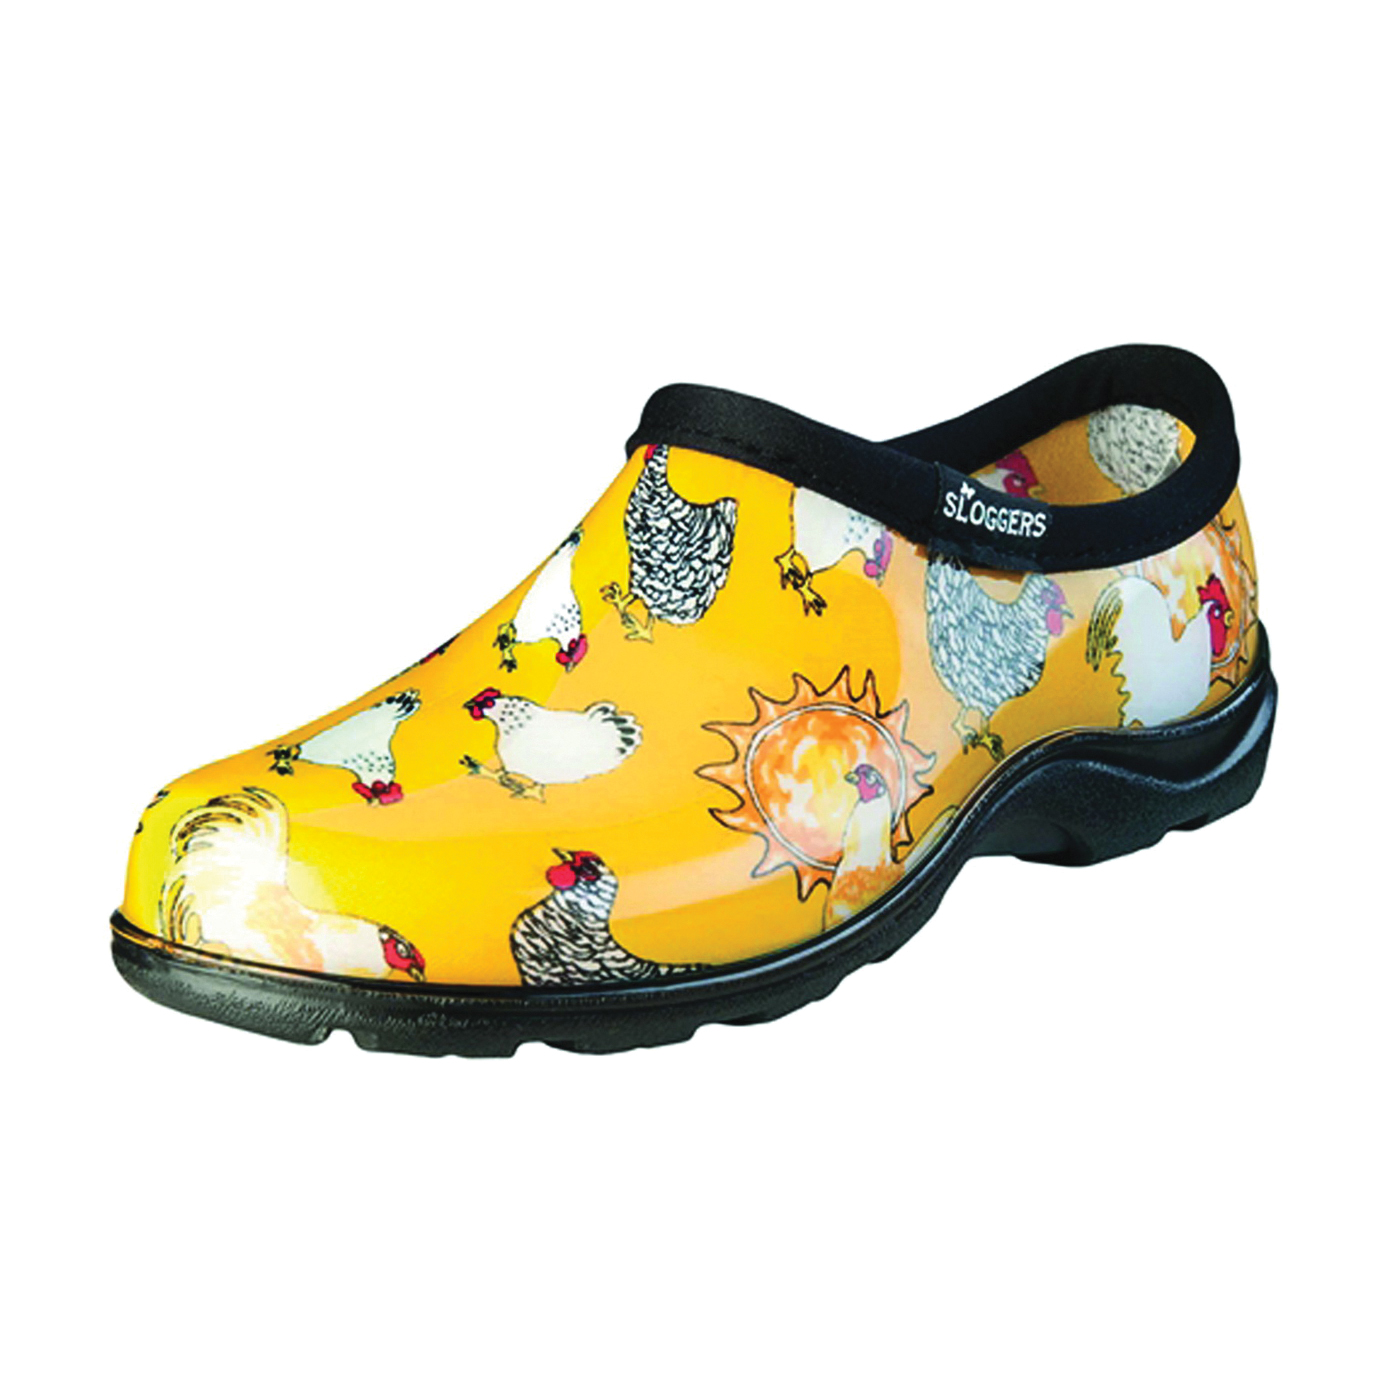 Picture of Sloggers 5116CDY-06 Garden Shoes, 6 in, Yellow